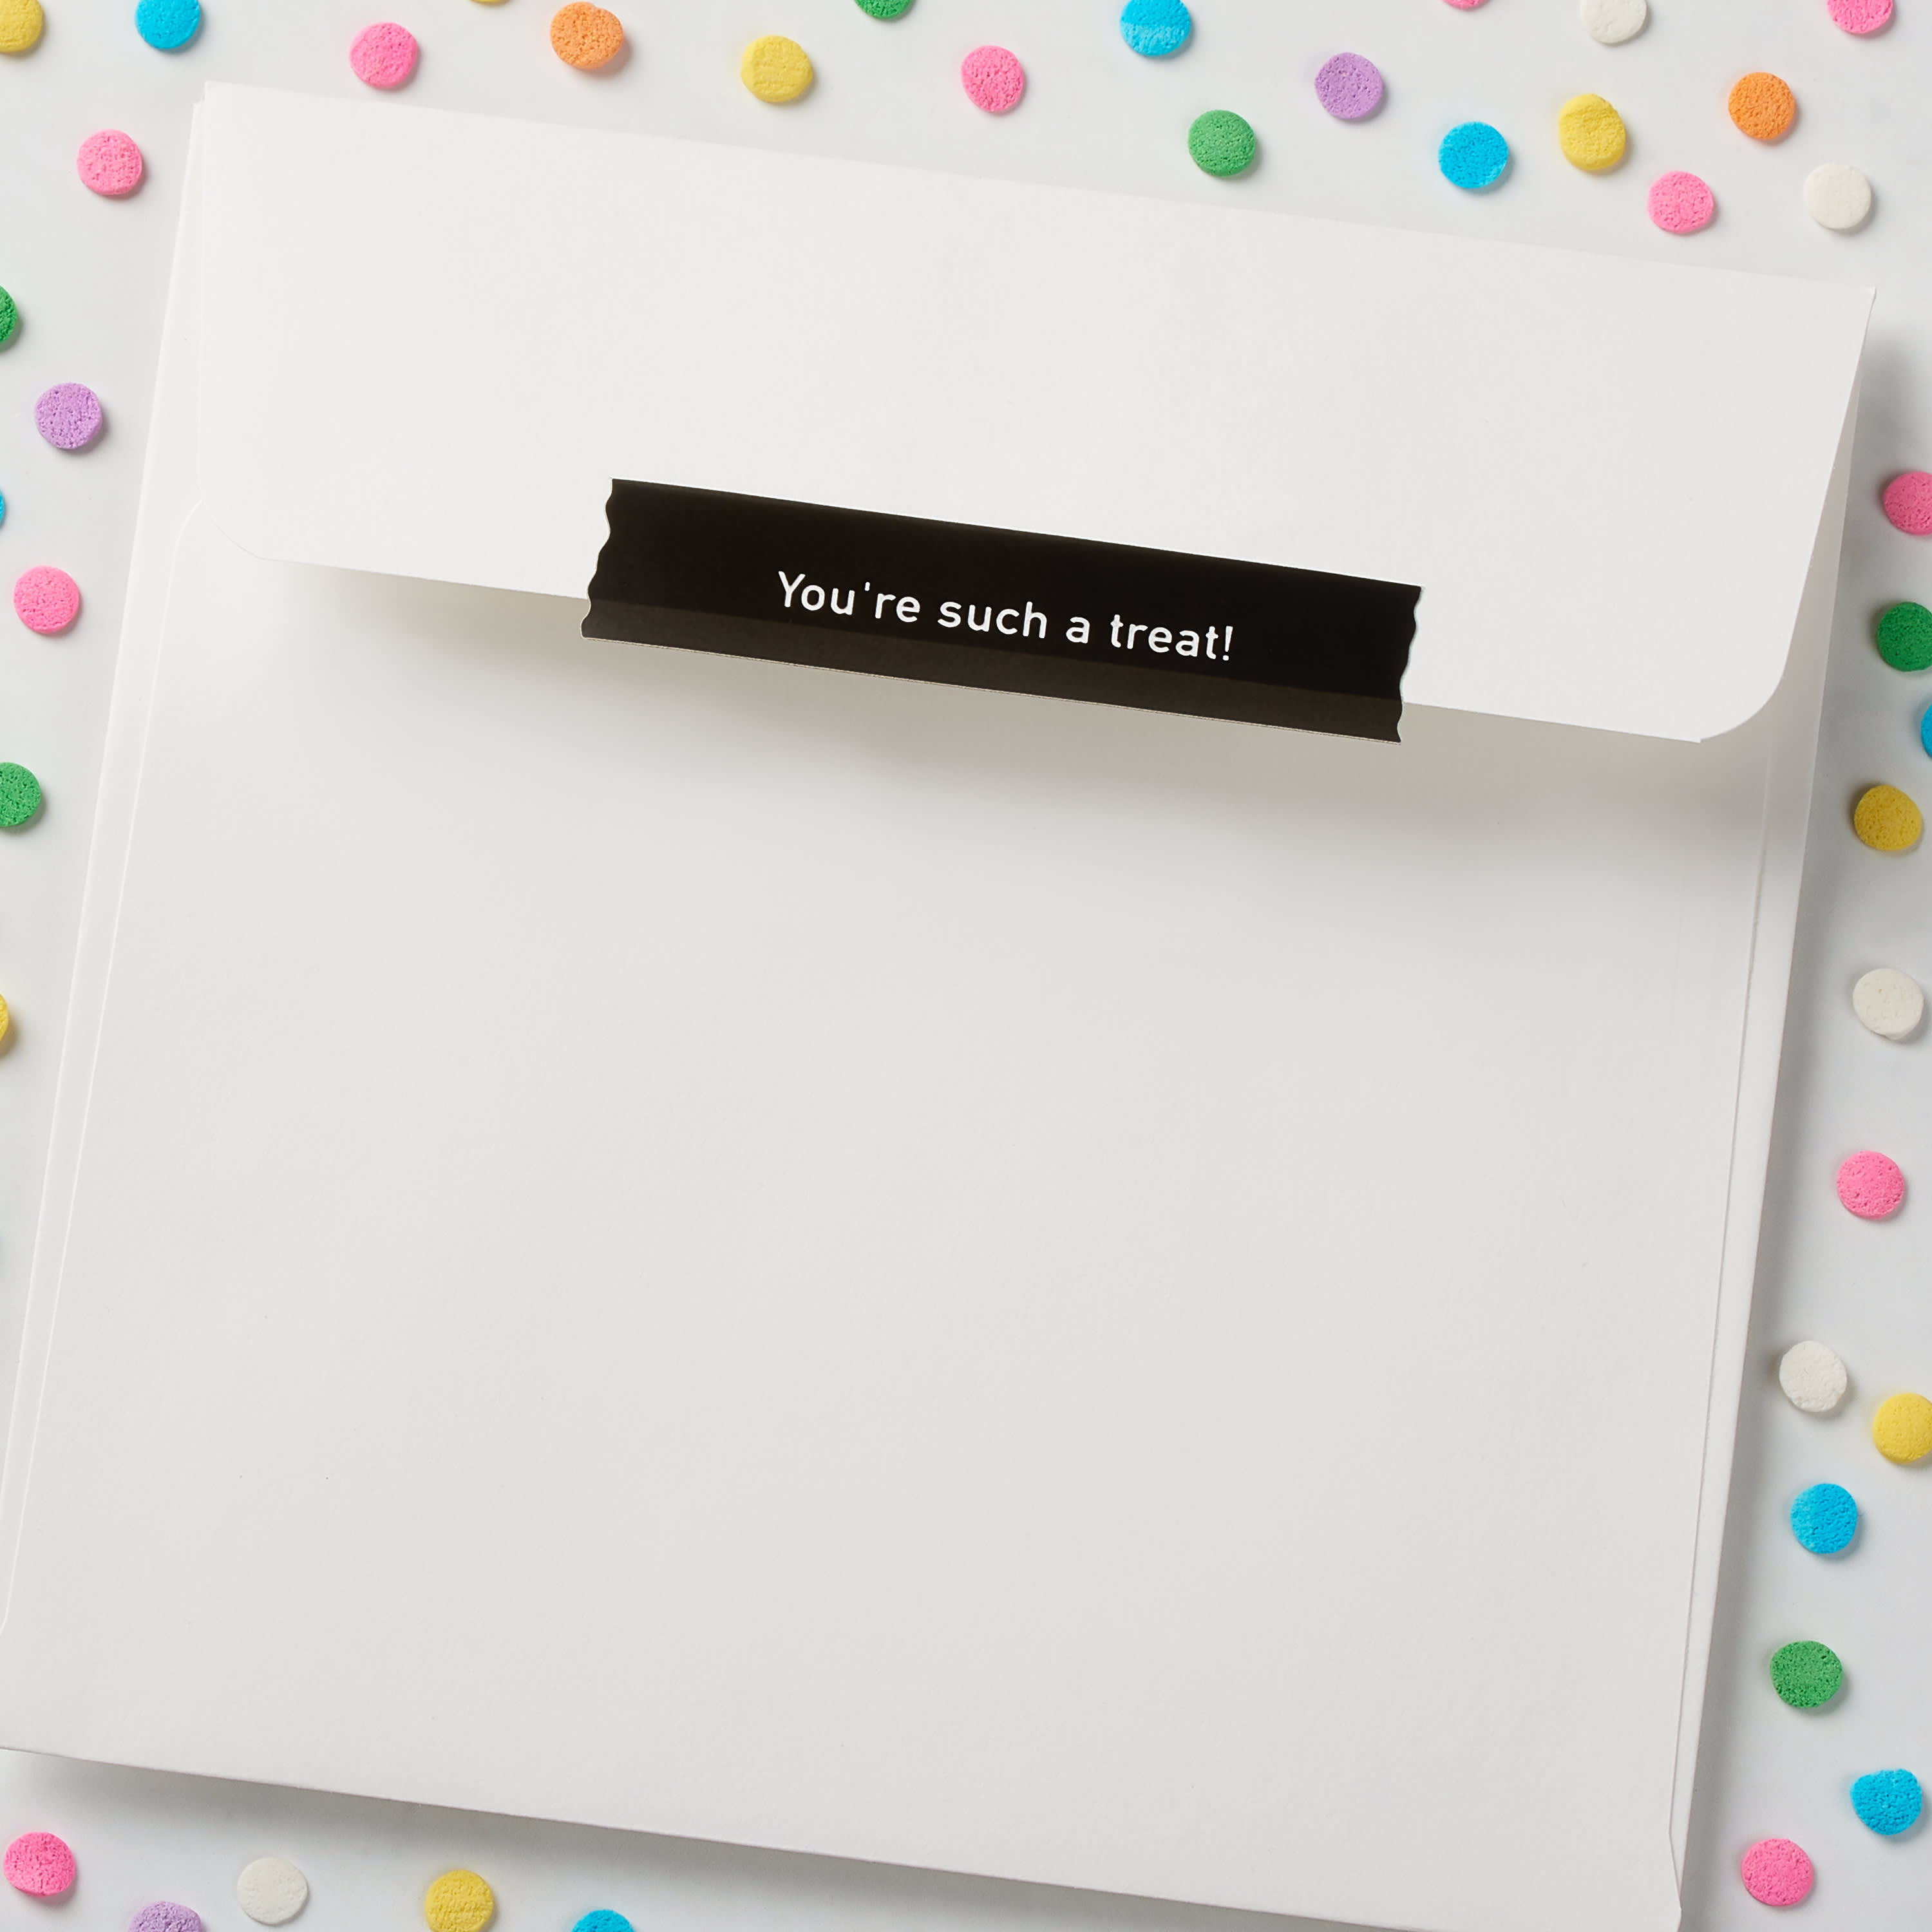 Candy Heart Valentine's Day Cards, 6-Count image